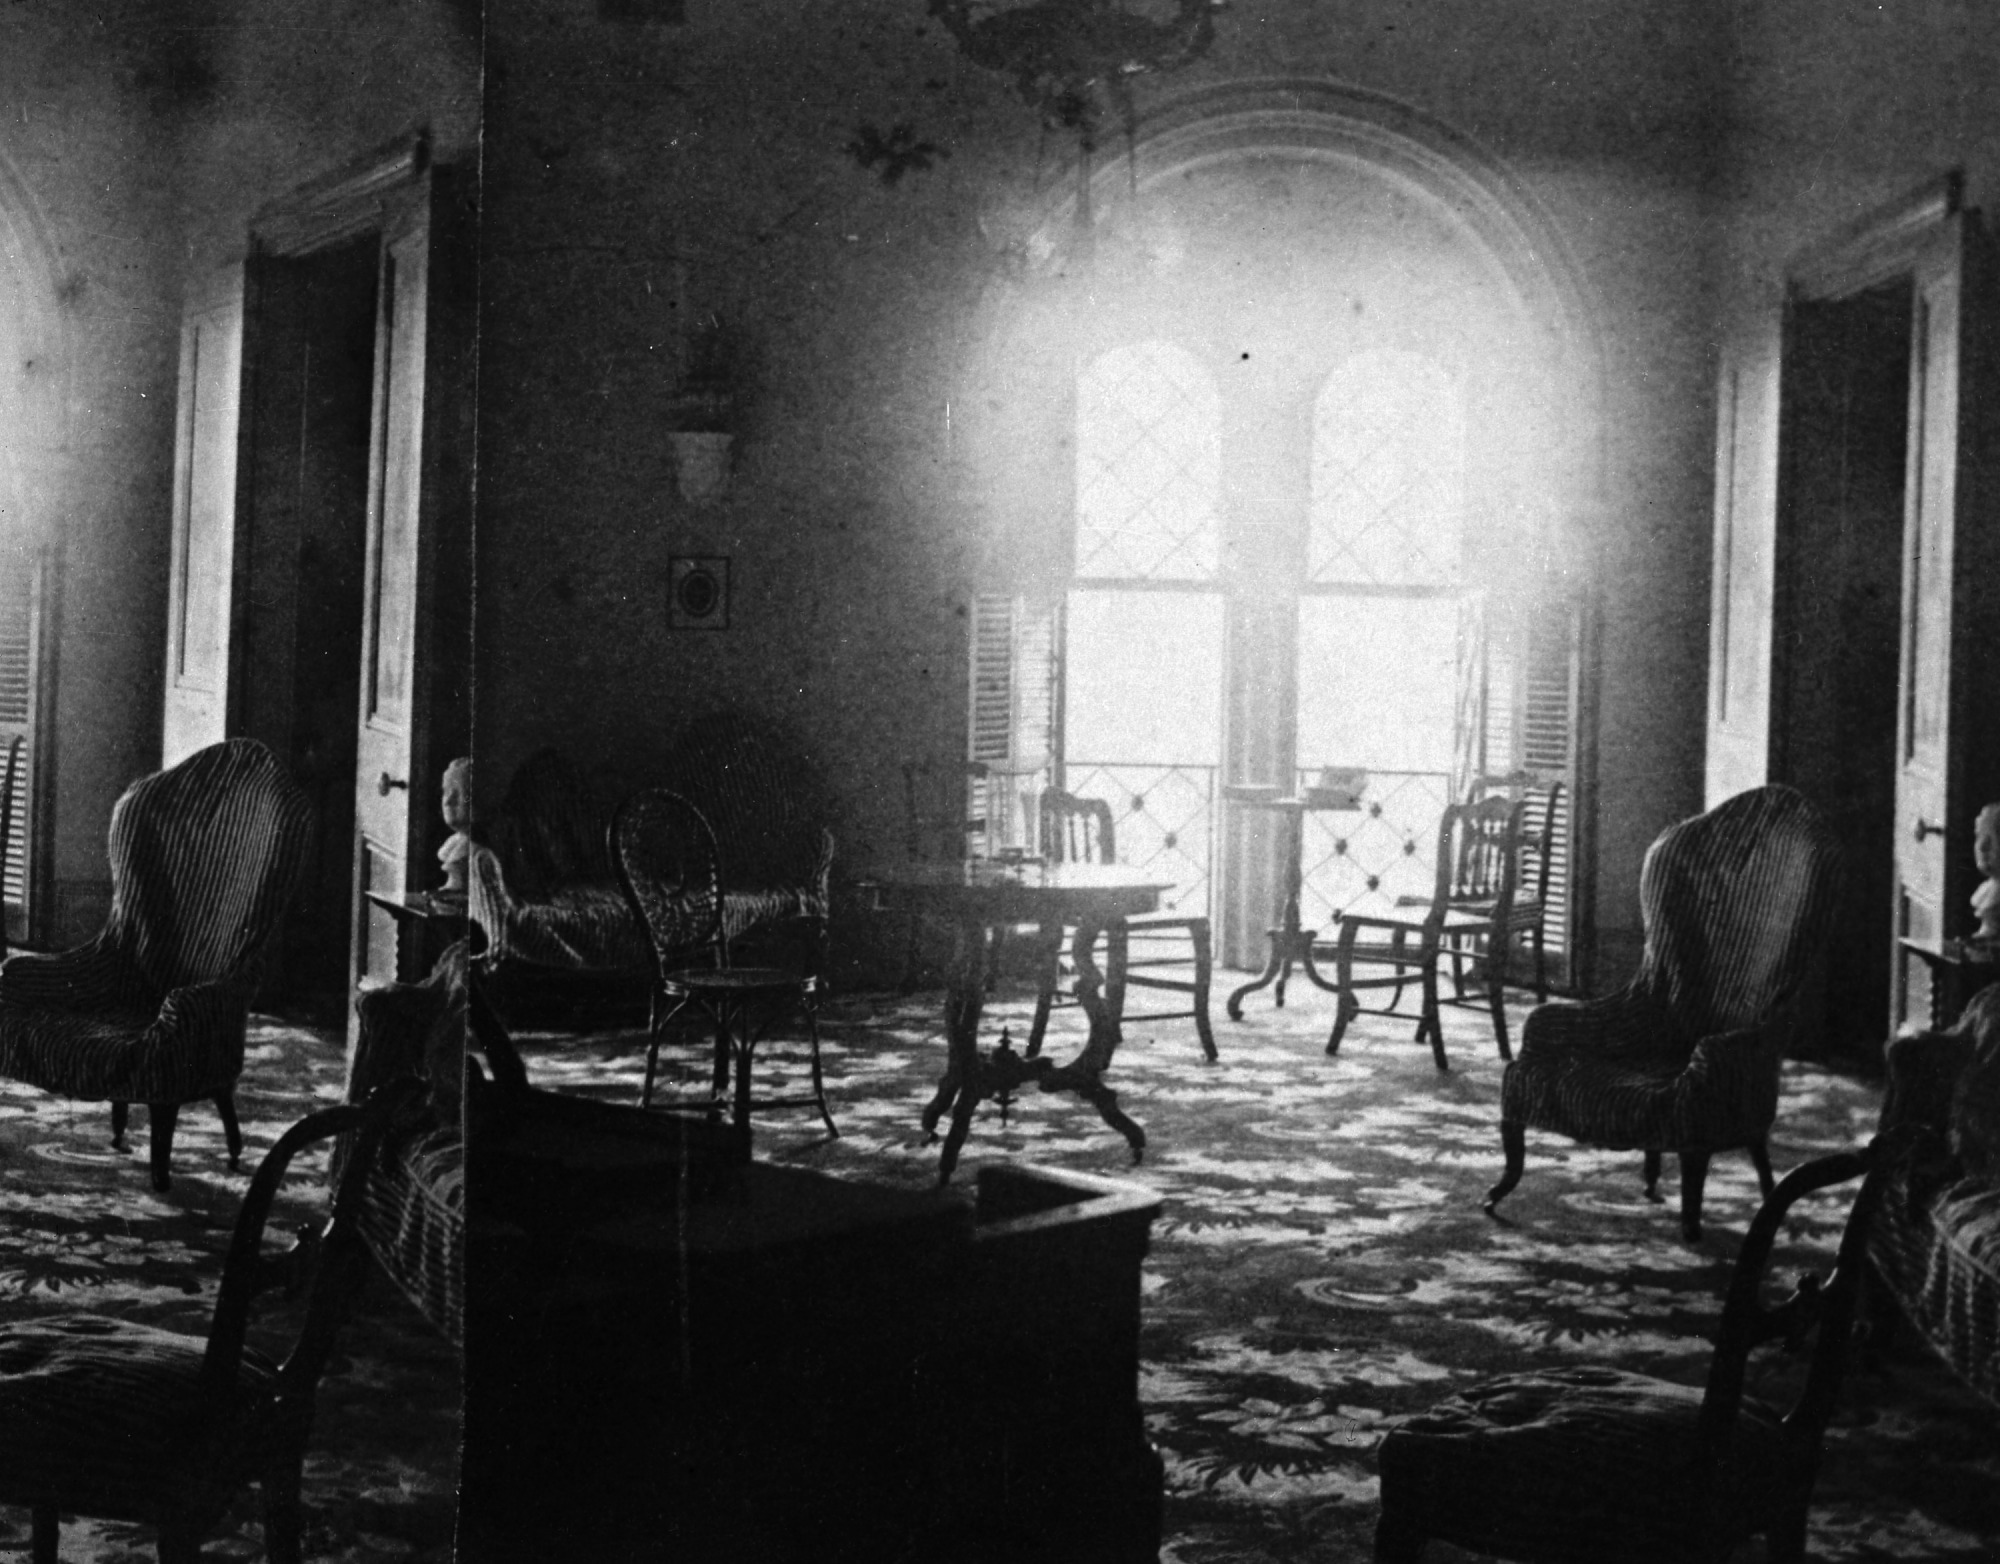 Photograph of Henry Family Apartments in the East Wing of the Smithsonian Castle was taken by Titian Ramsey Peale, 1862. Smithsonian Institution Archives, negative number mah-46638c.